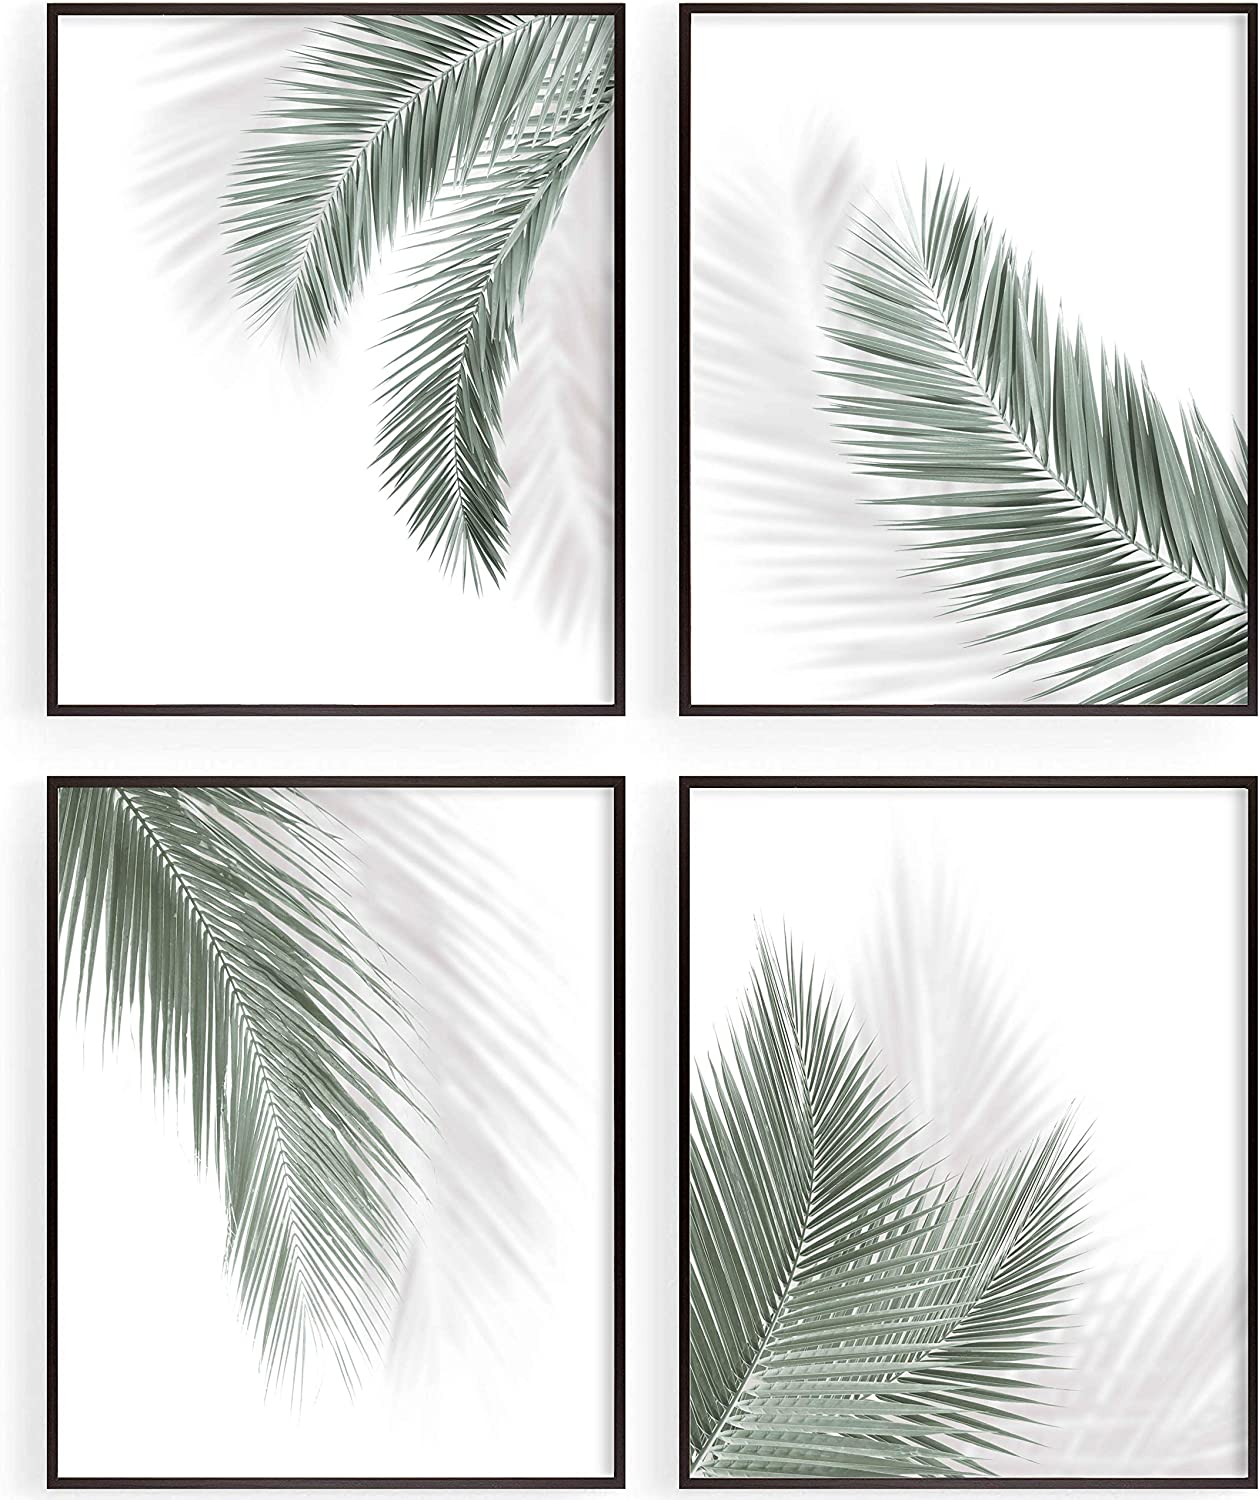 Botanical Bathroom Wall Decor, Green Leaves Simple Wall Art Prints for Home|Farmhouse |Kitchen|Office|Living Room, Palm Wall Posters, Salon SPA Wall Decoration, Minimalist Wall Art, Set of 4, 8